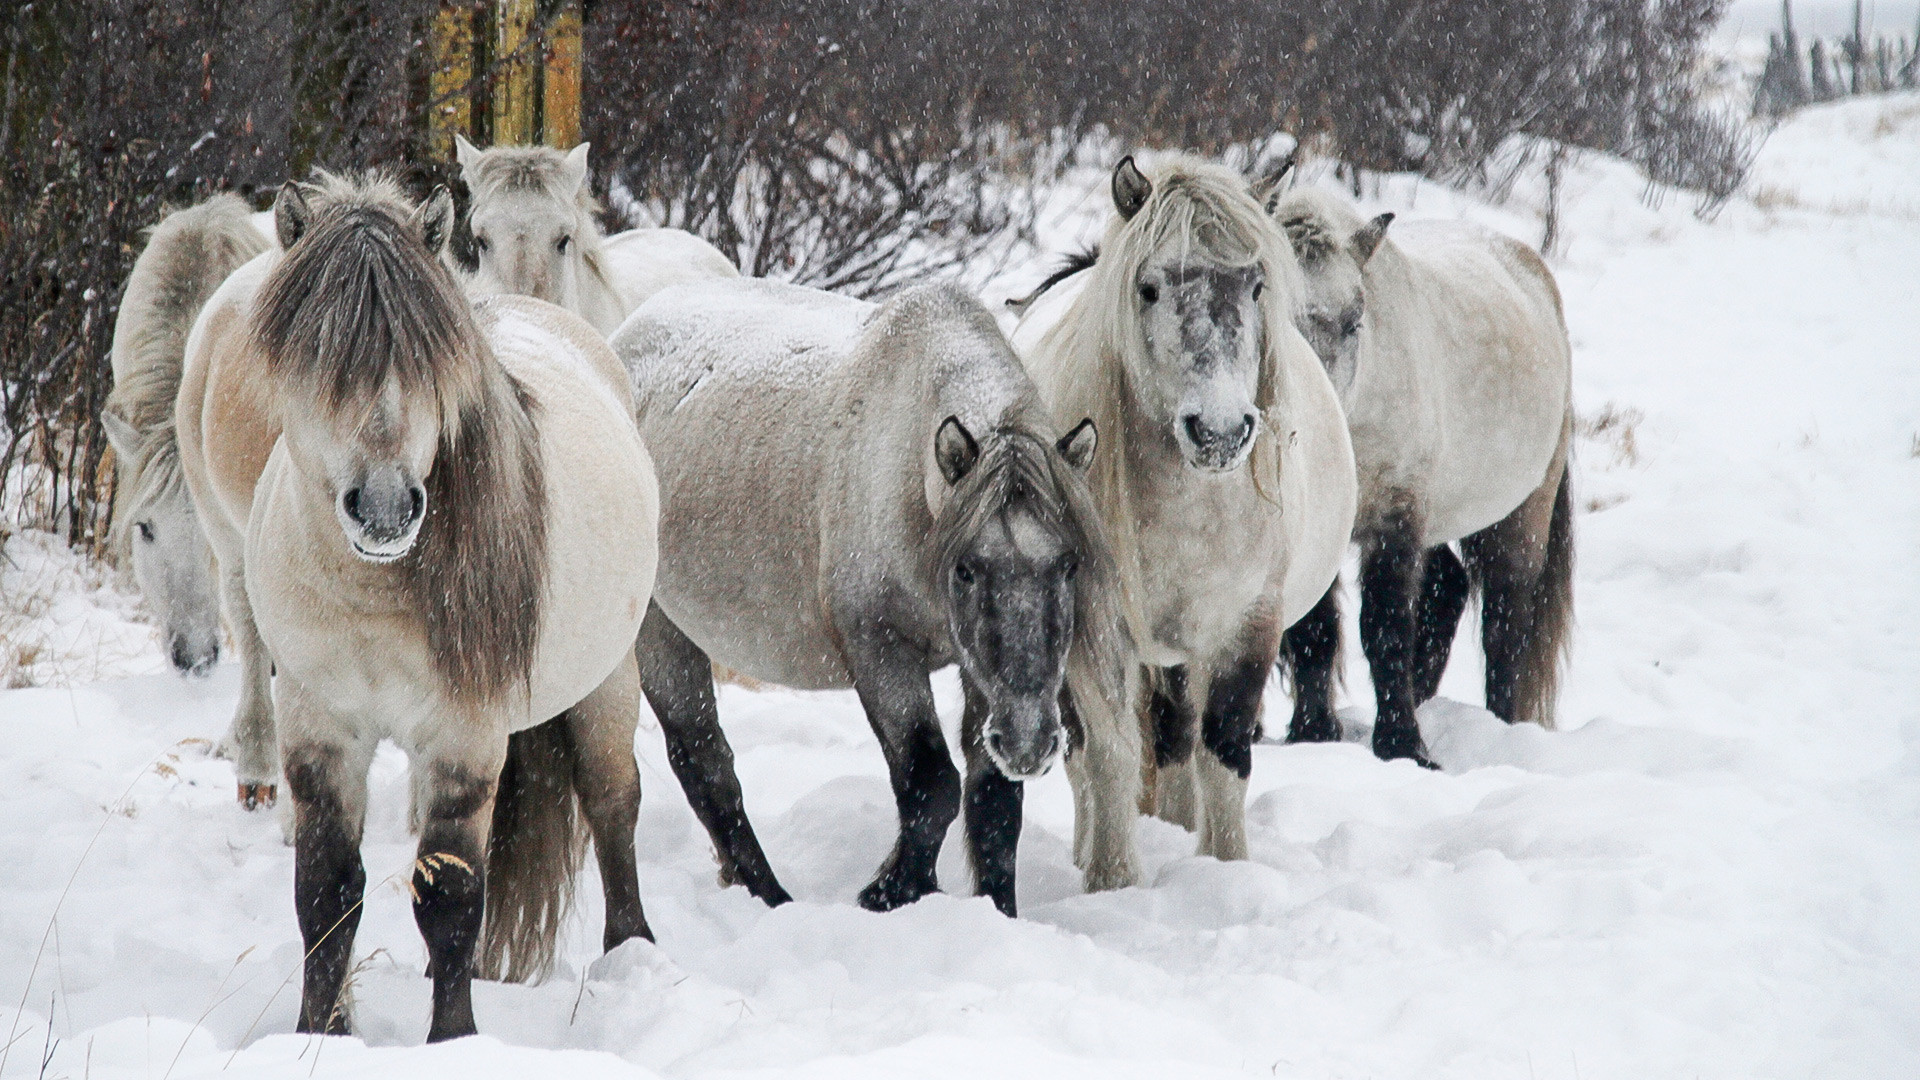 Yakut horses were the first animals that were brought to the Pleistocene Park.